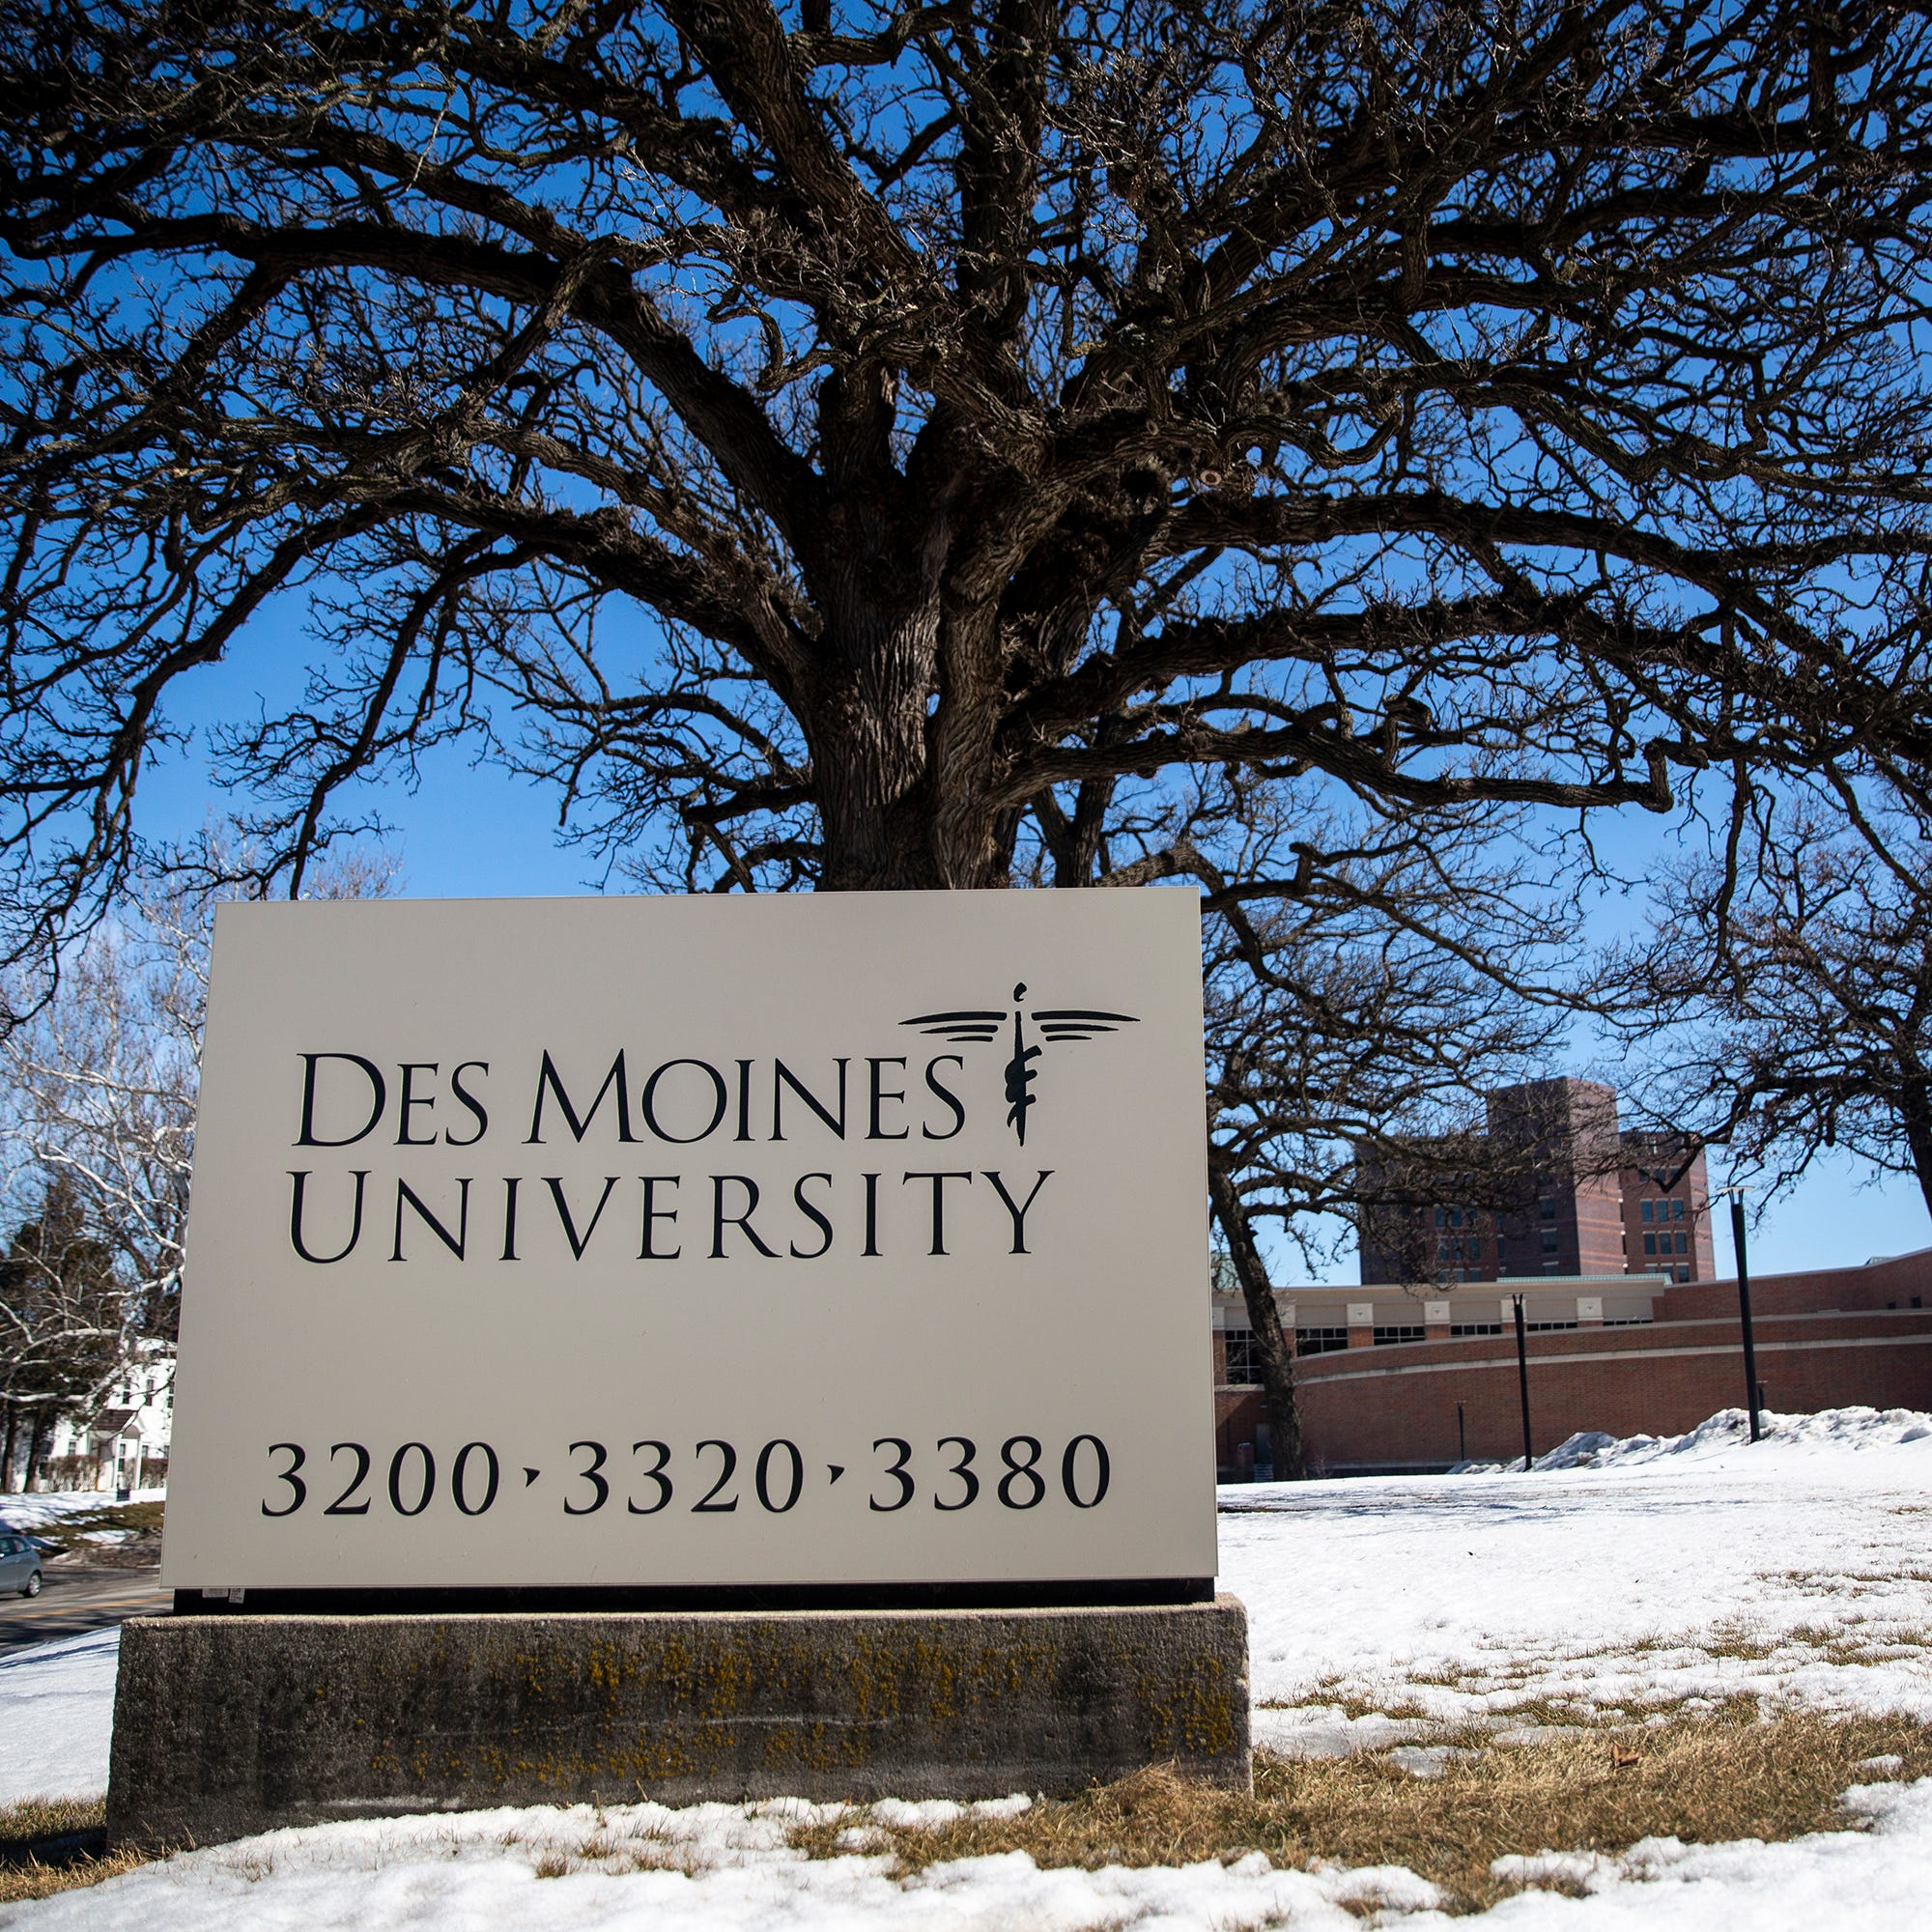 Des Moines University plans move to West Des Moines